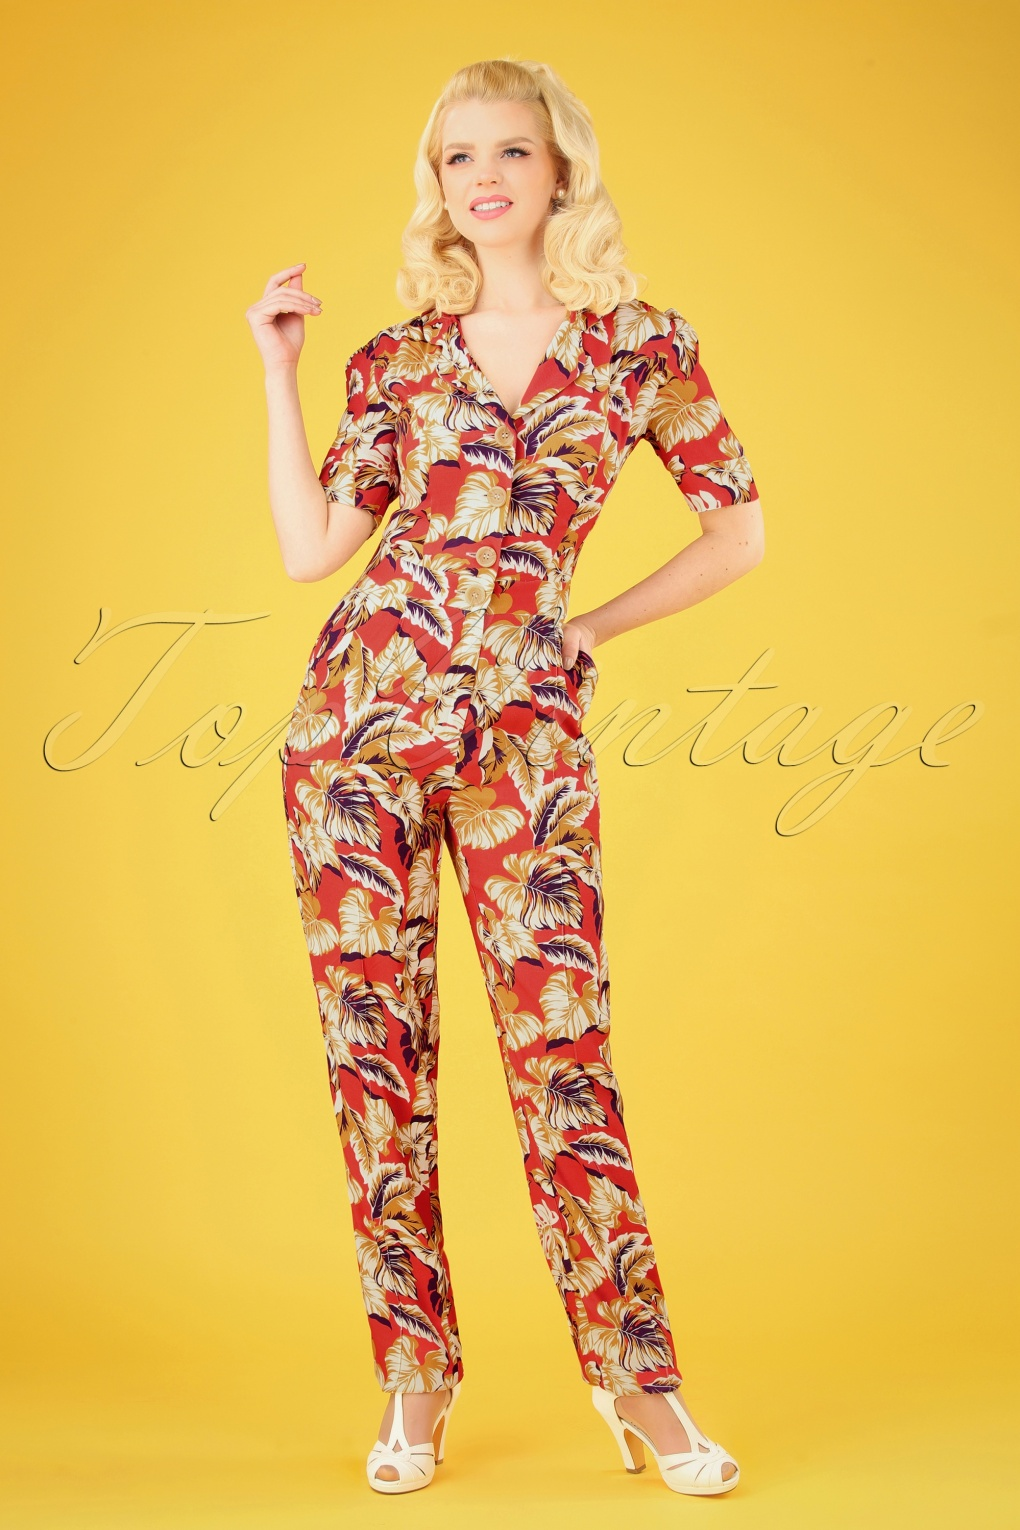 Vintage High Waisted Trousers, Sailor Pants, Jeans 40s Classic Hibiscus Flowers Jumpsuit in Montana Dust £70.73 AT vintagedancer.com